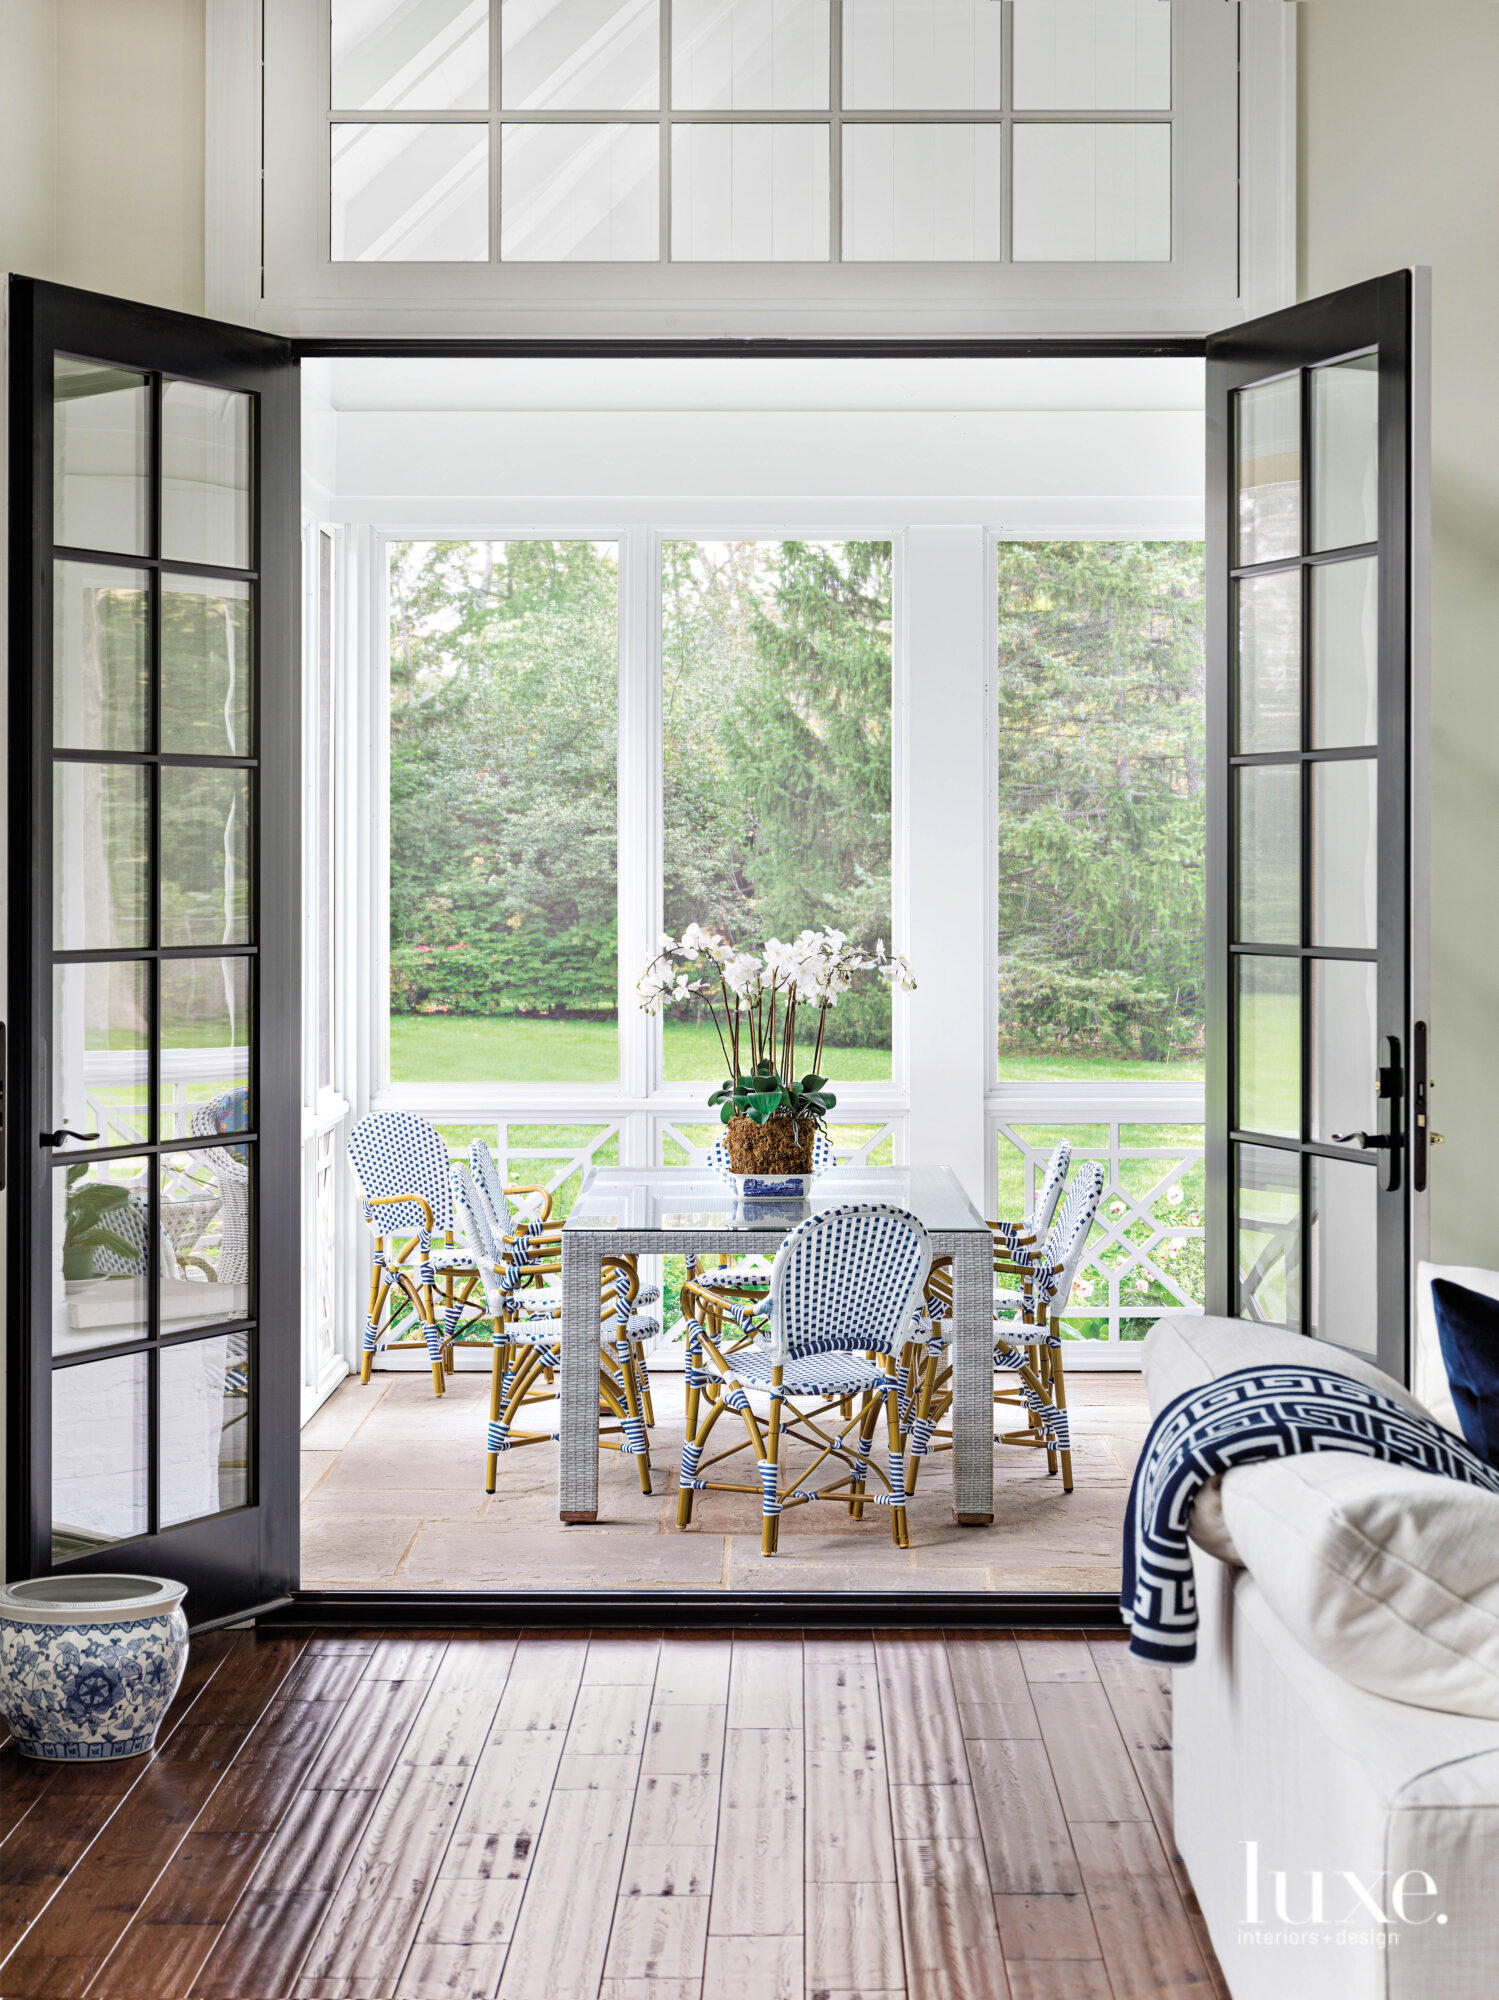 The screened-in porch with a dining table and bistro-style chairs.